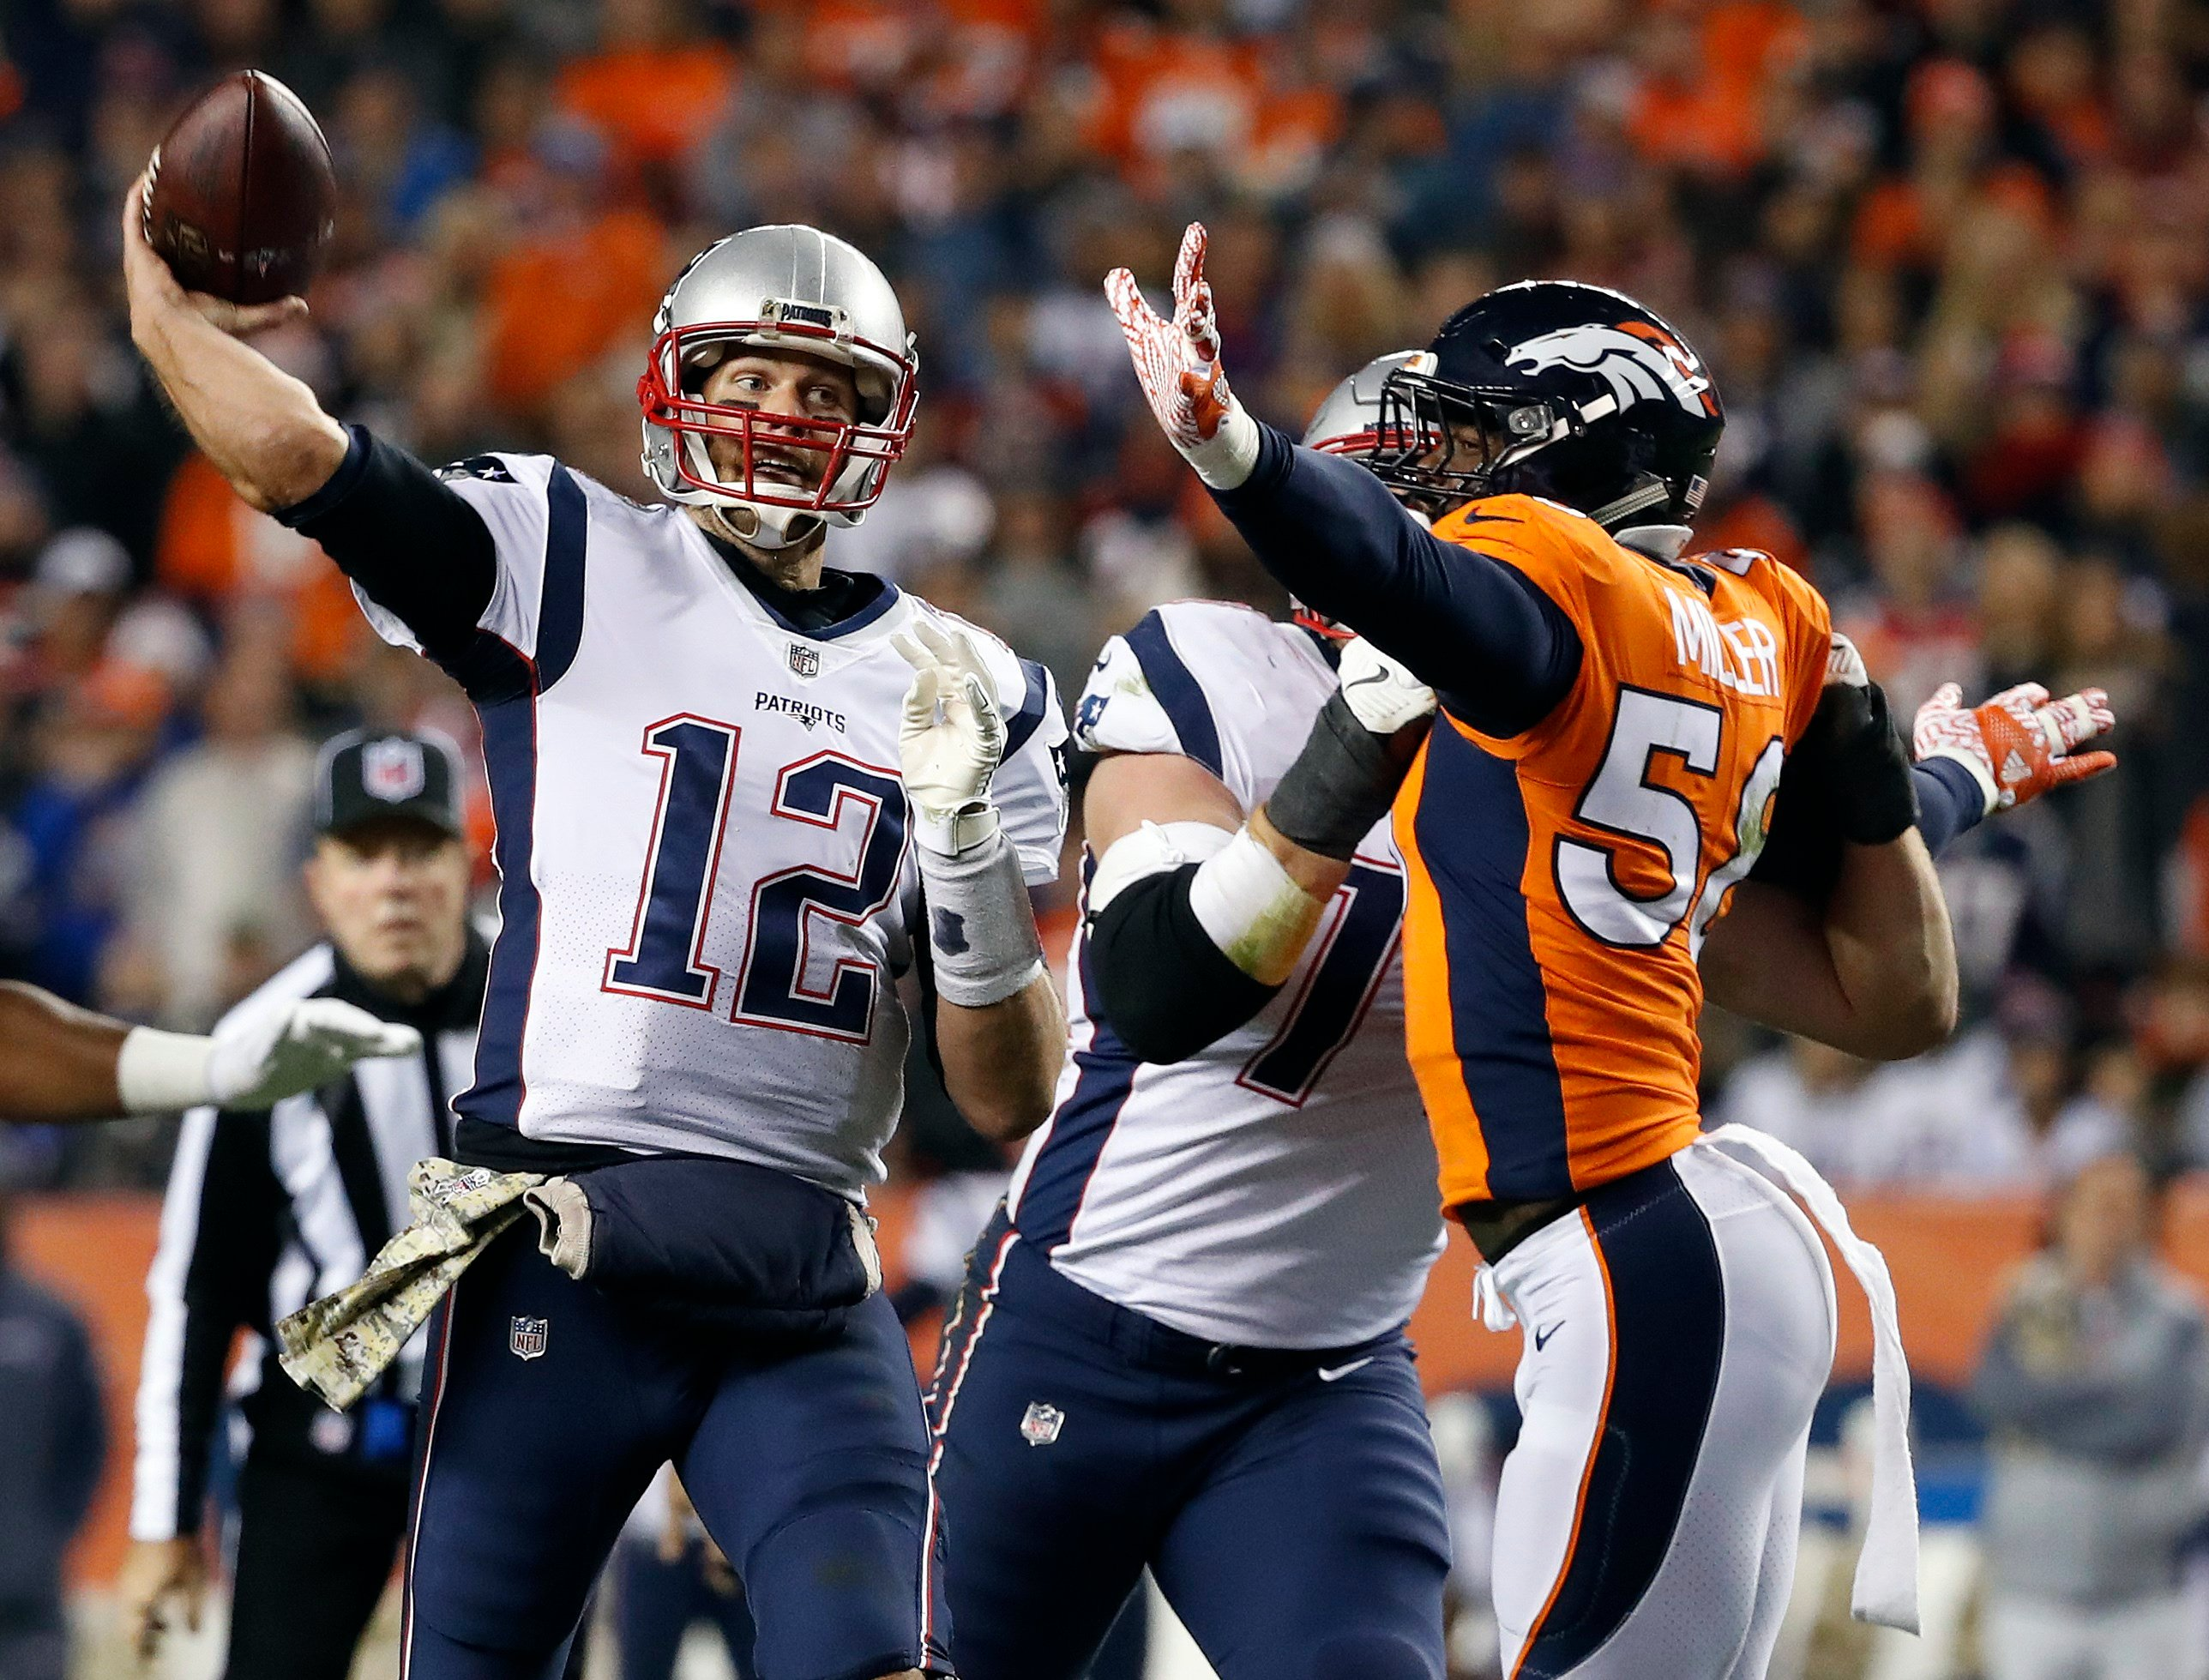 Grading the Broncos in their 41-16 loss to the Patriots